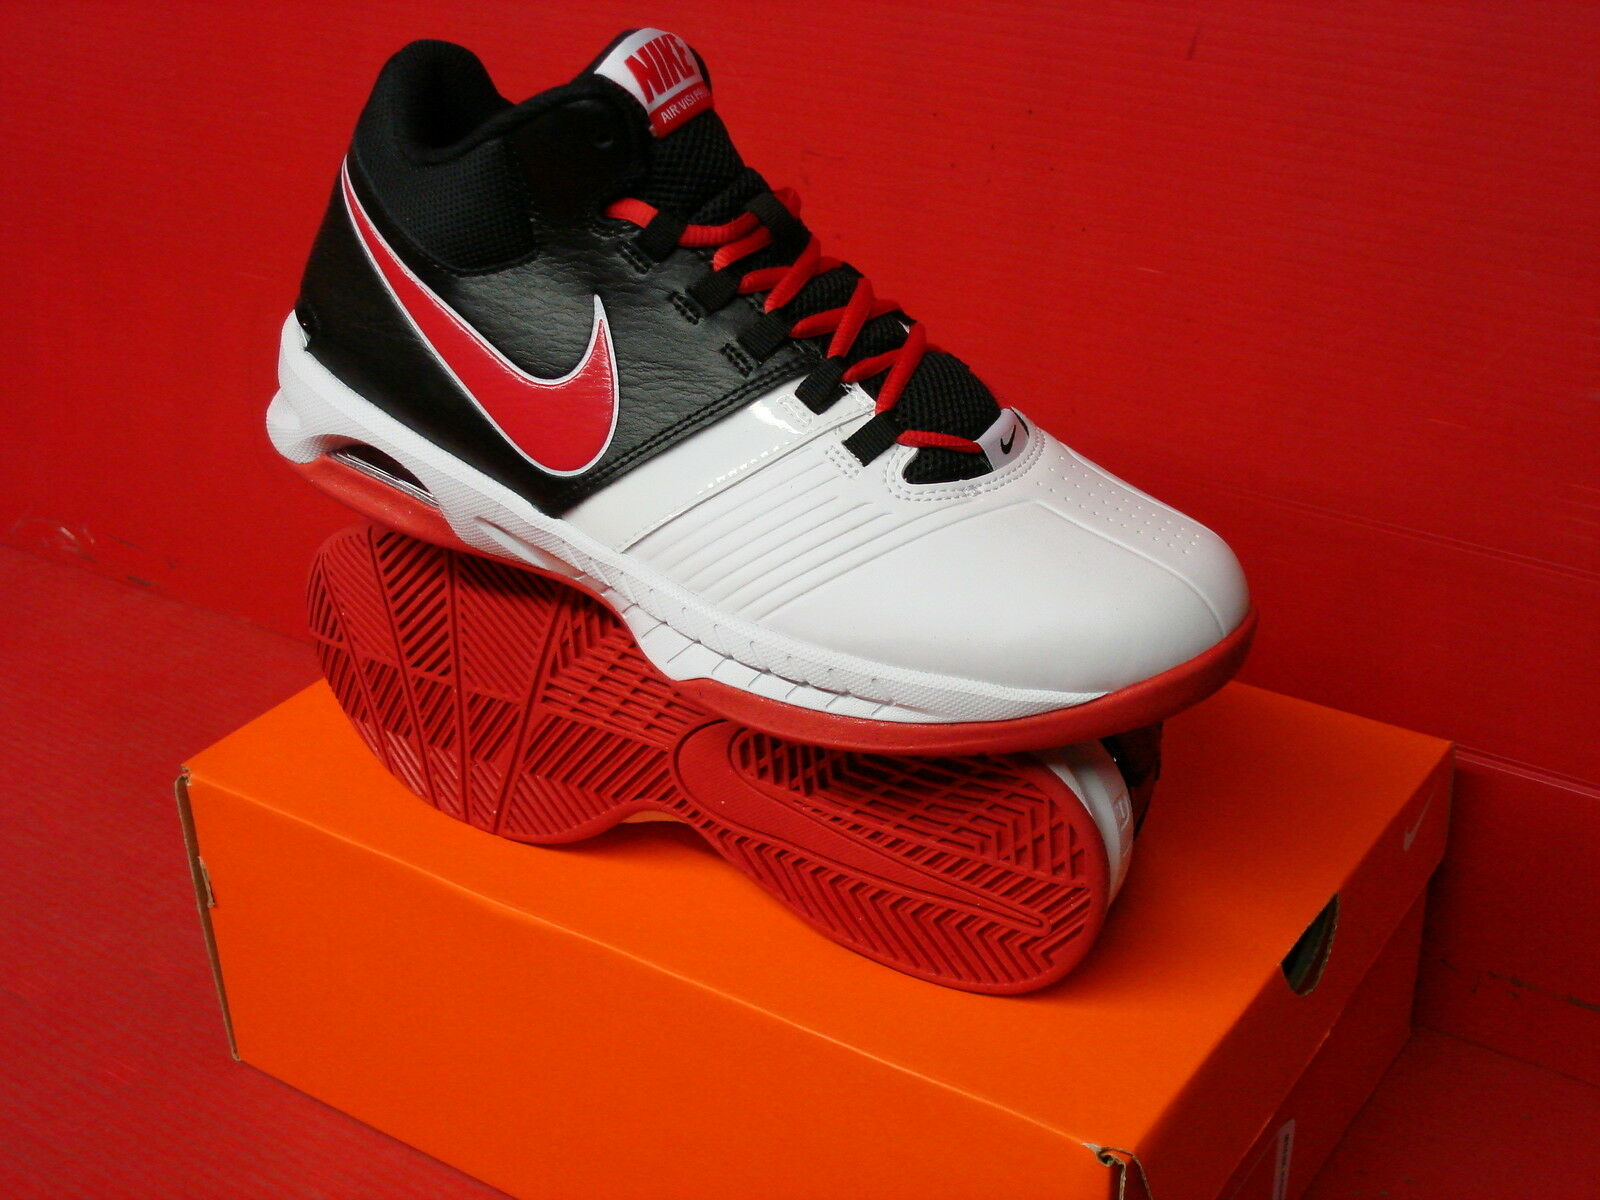 Nike Air Visi Pro V 5 White Black Red Mens Basketball Shoes SNEAKERS  653656-102 8.5 | eBay